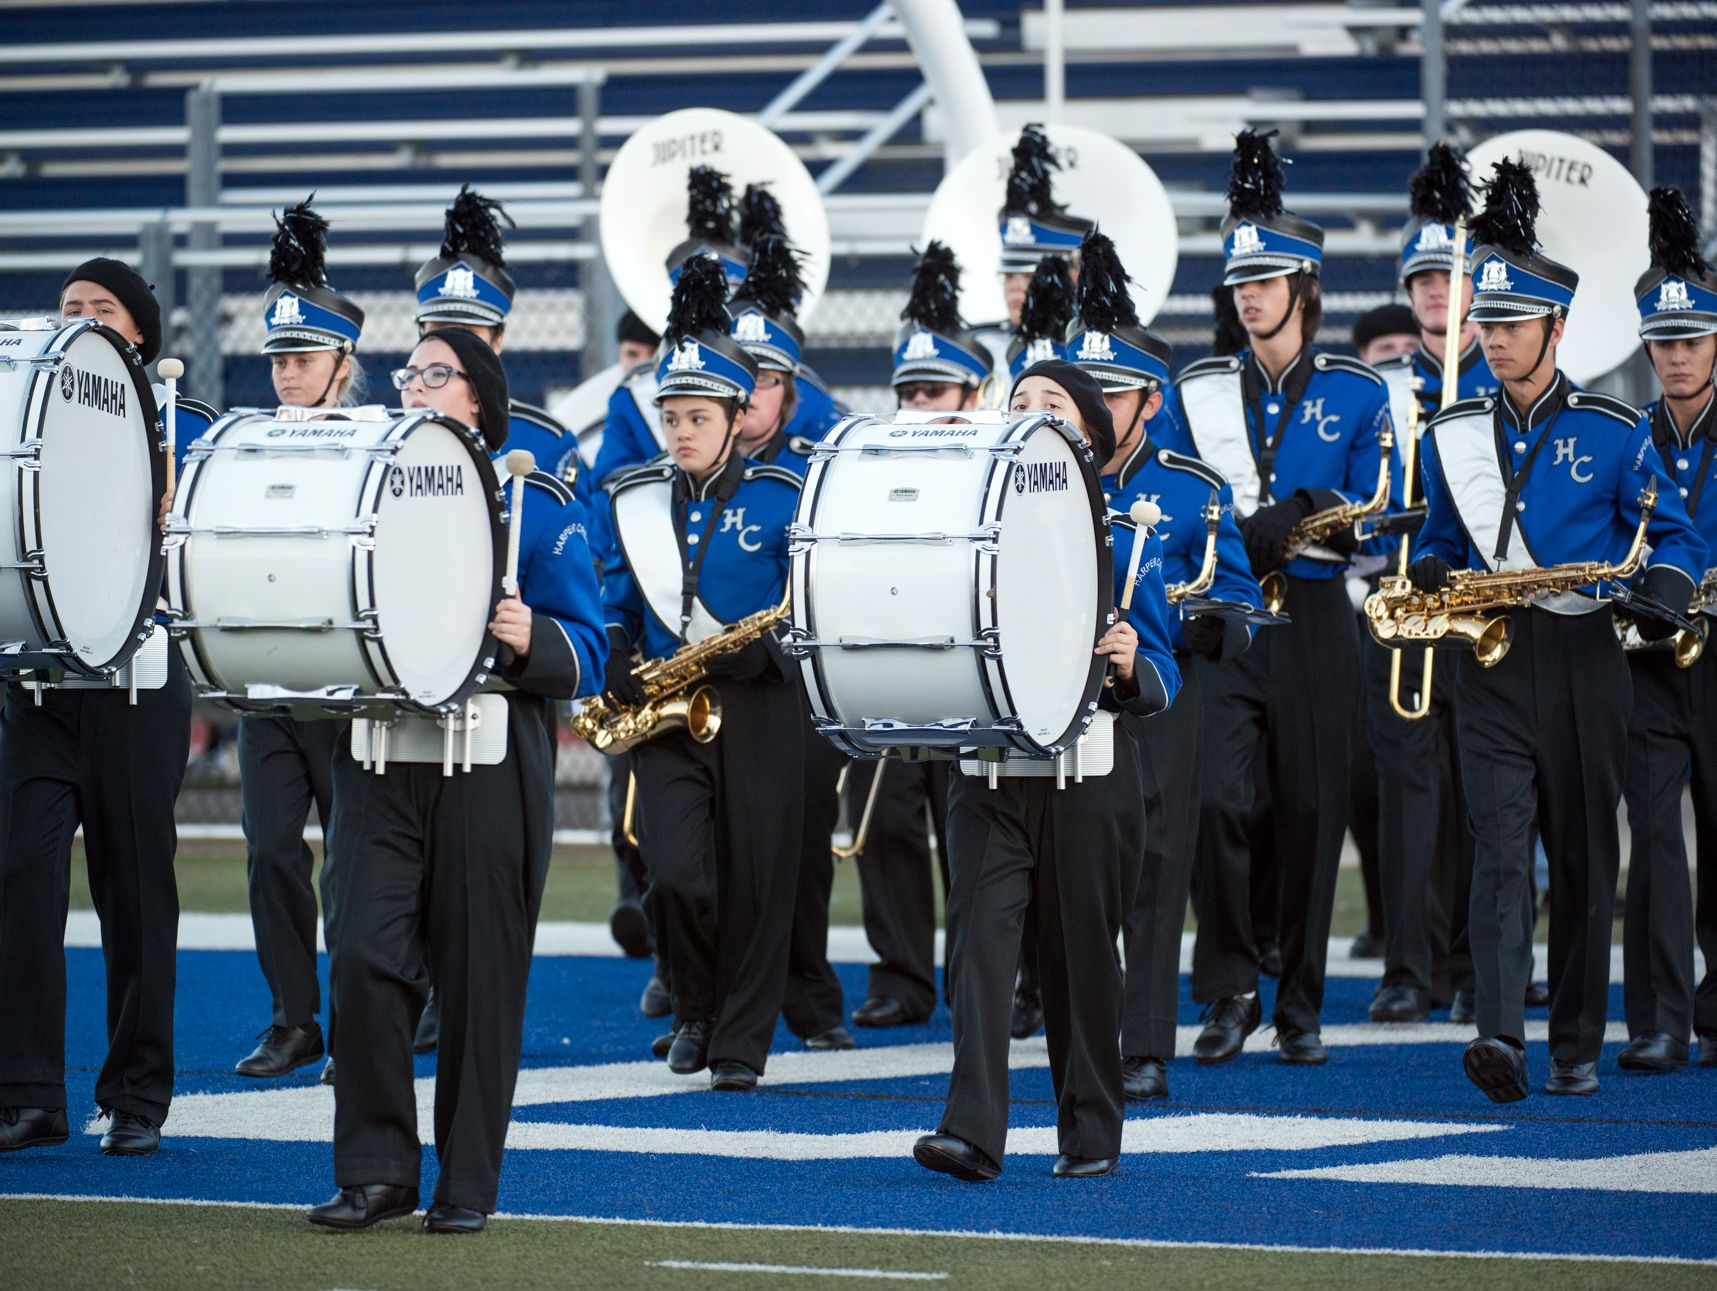 The Harper Creek band takes the field before a game earlier this season.